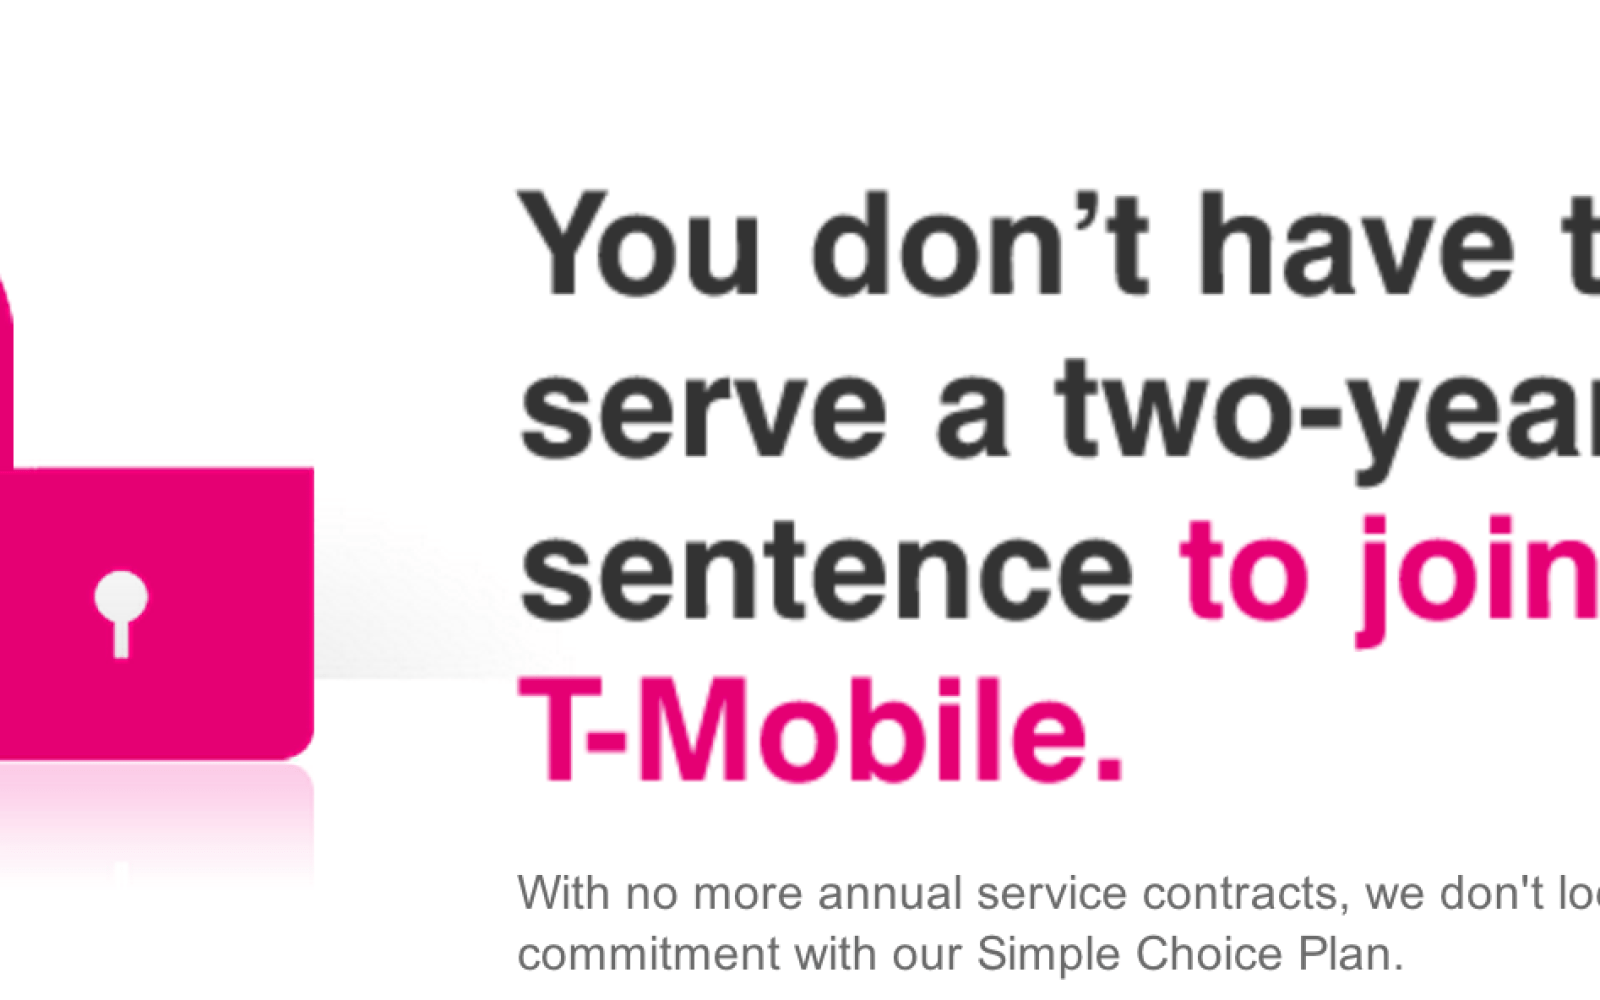 Attorney General calls T-Mobile's no-contract plans 'deceptive', carrier agrees to offer refunds and change advertising